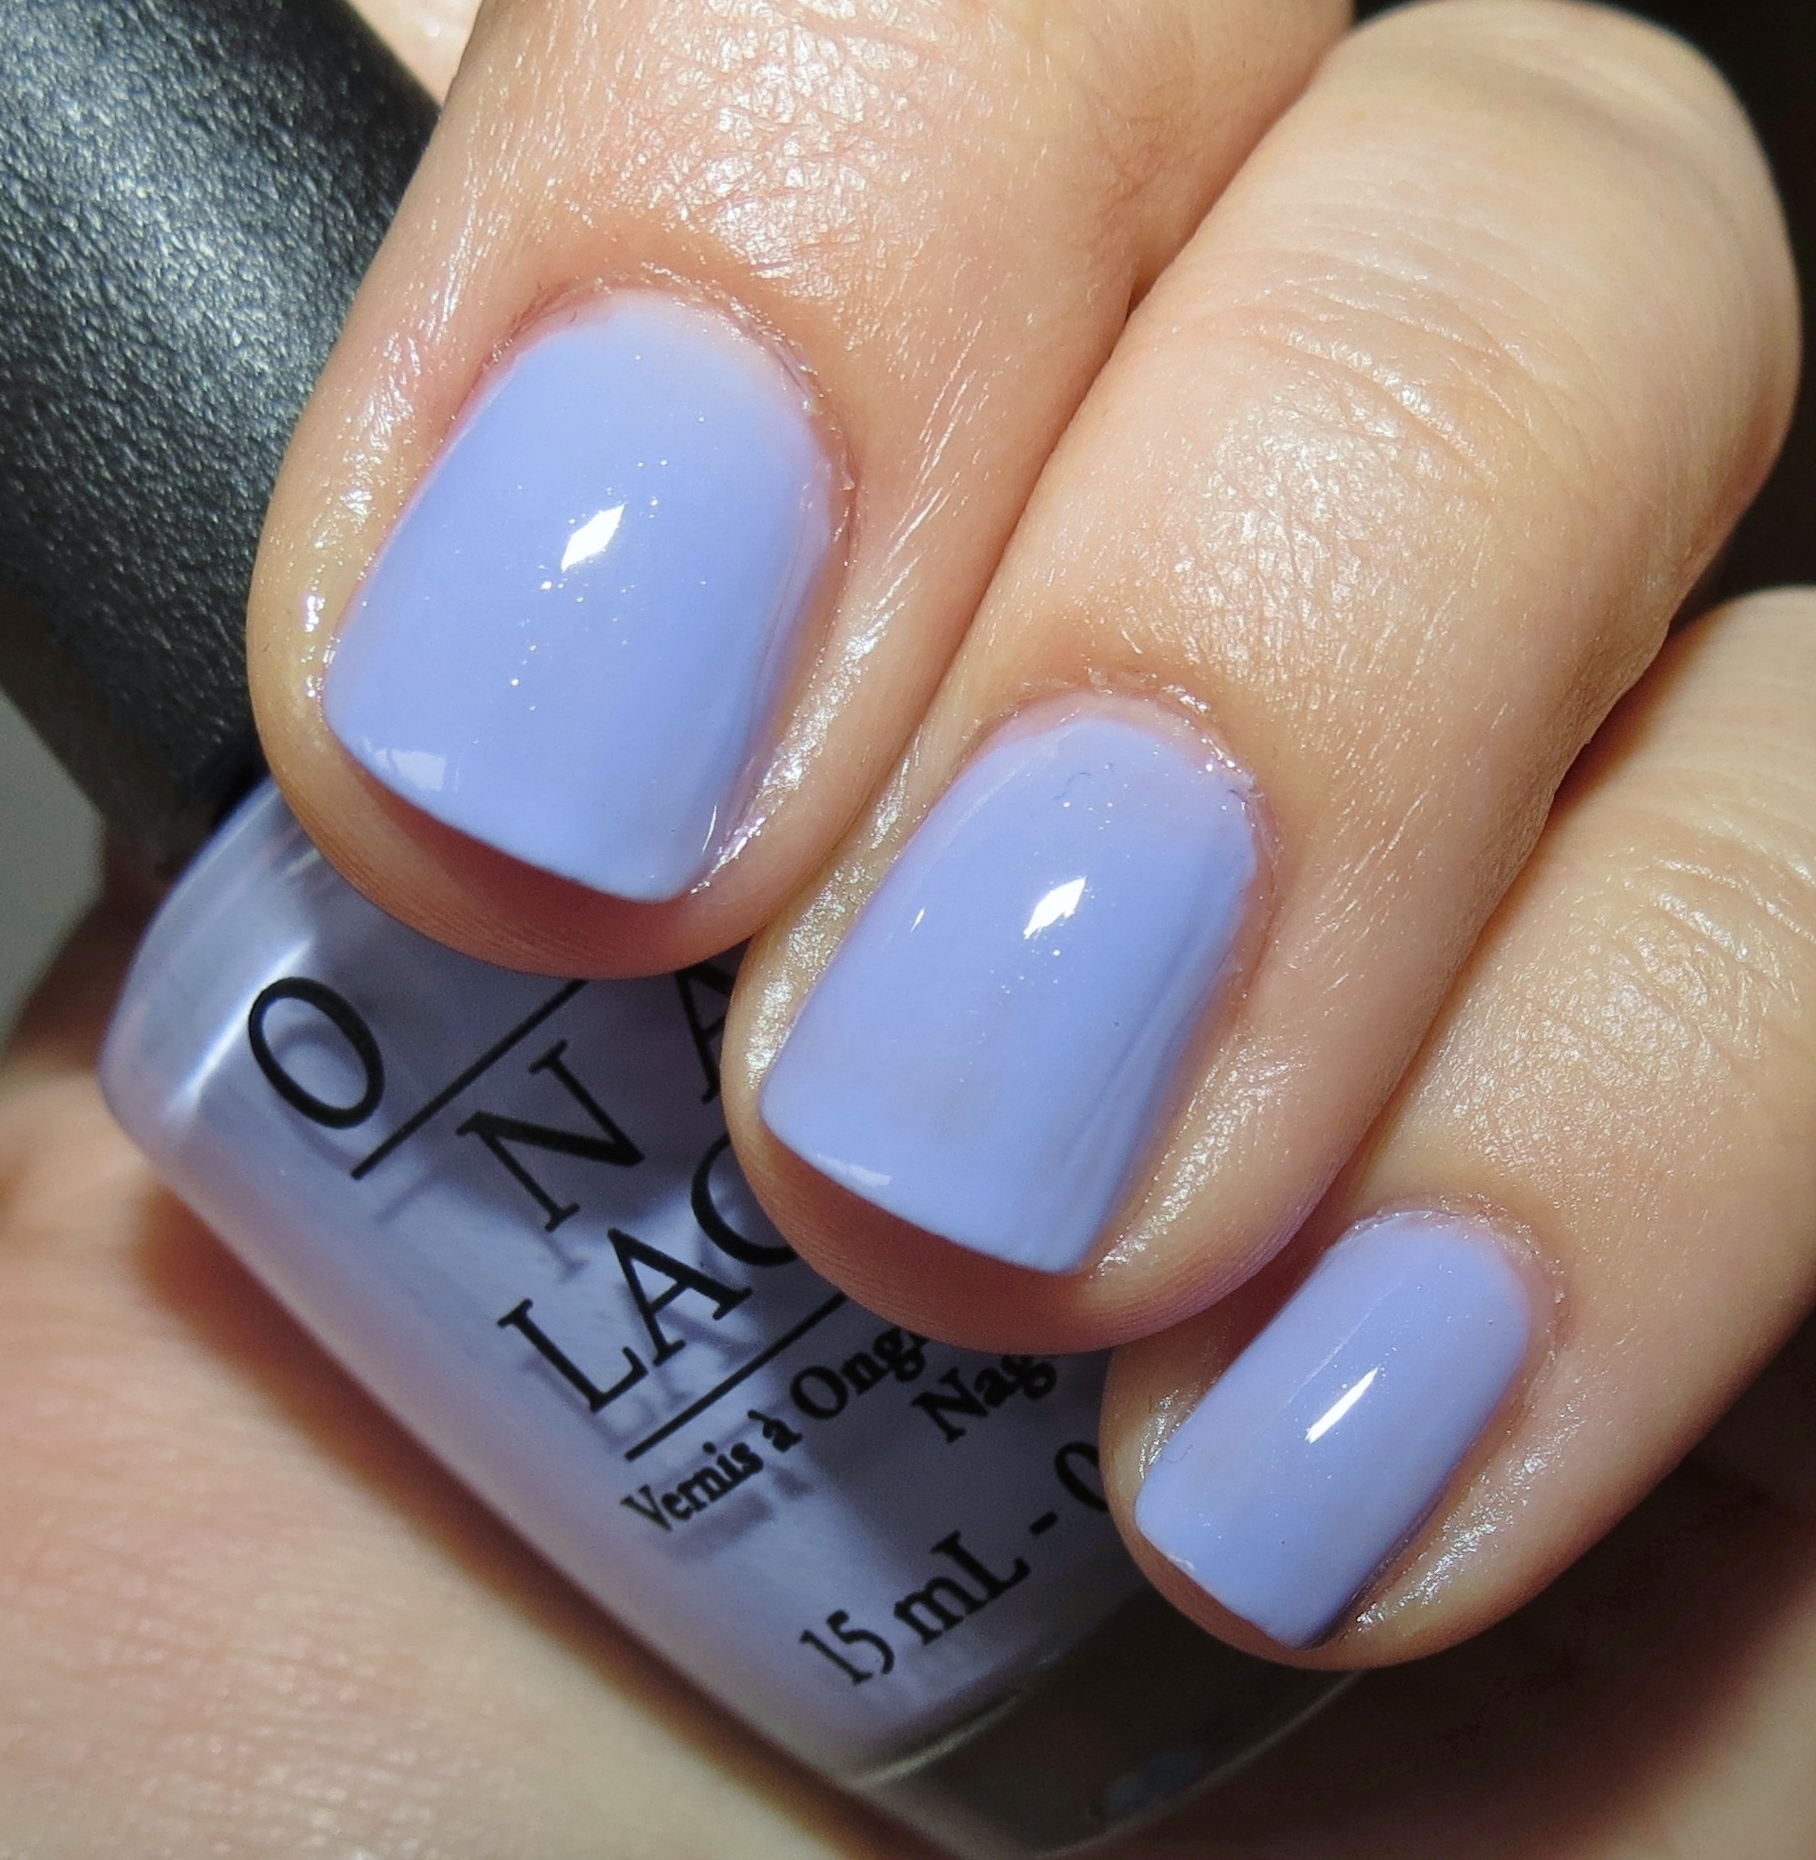 Perwinkle nail color